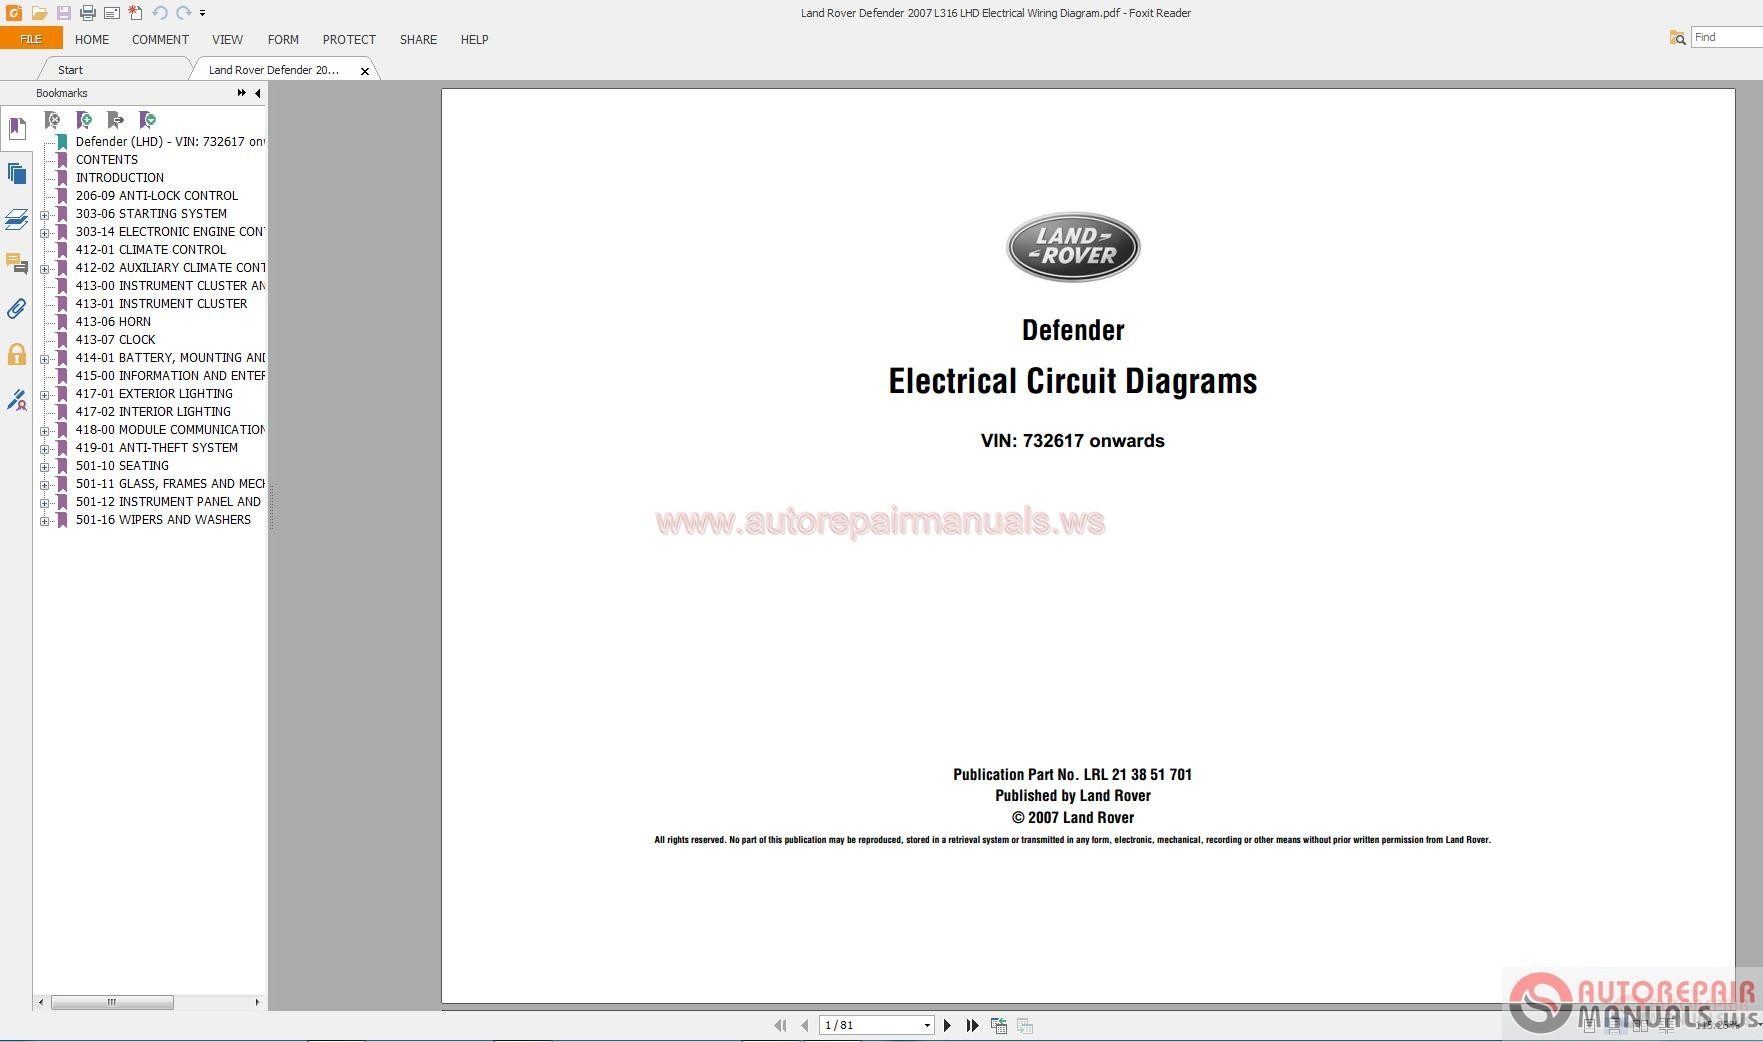 hight resolution of land rover defender 2007 l316 lhd electrical wiring diagram auto